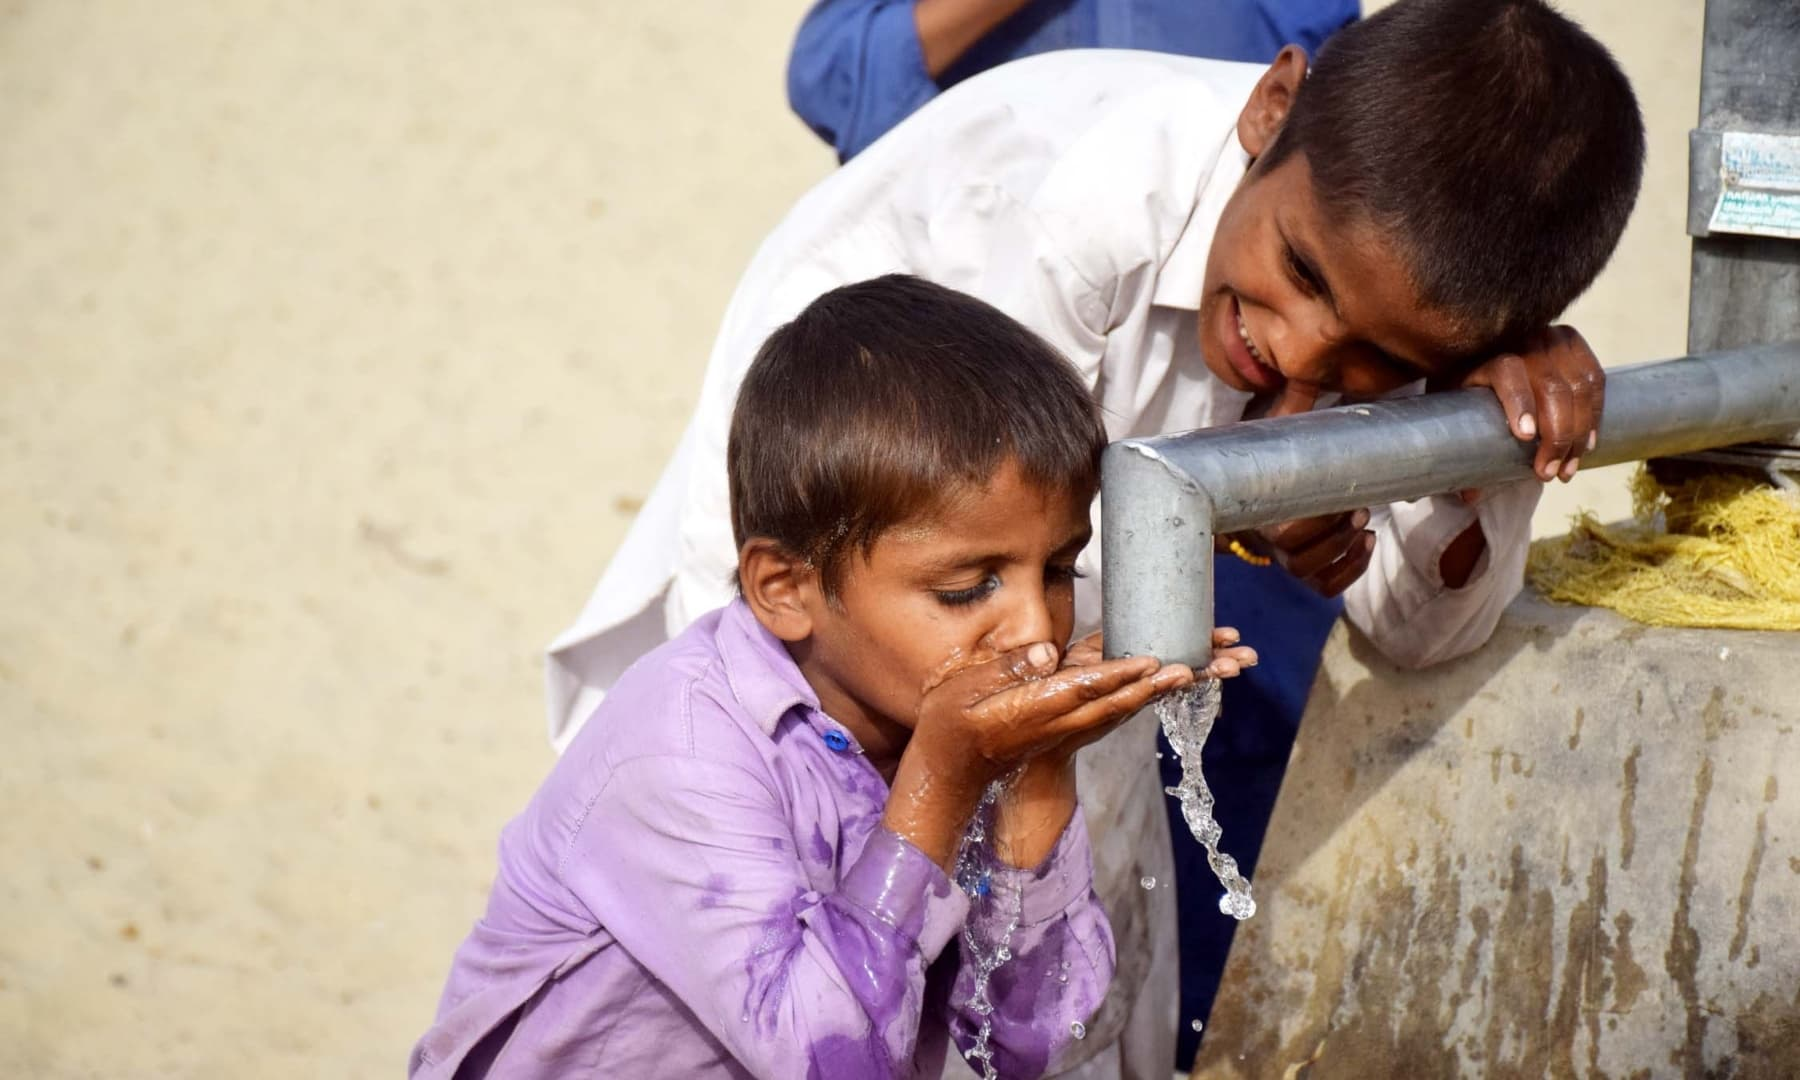 Children drinking water from a well in Achhro Thar, Khipro, Sindh. — Photo by Umair Ali